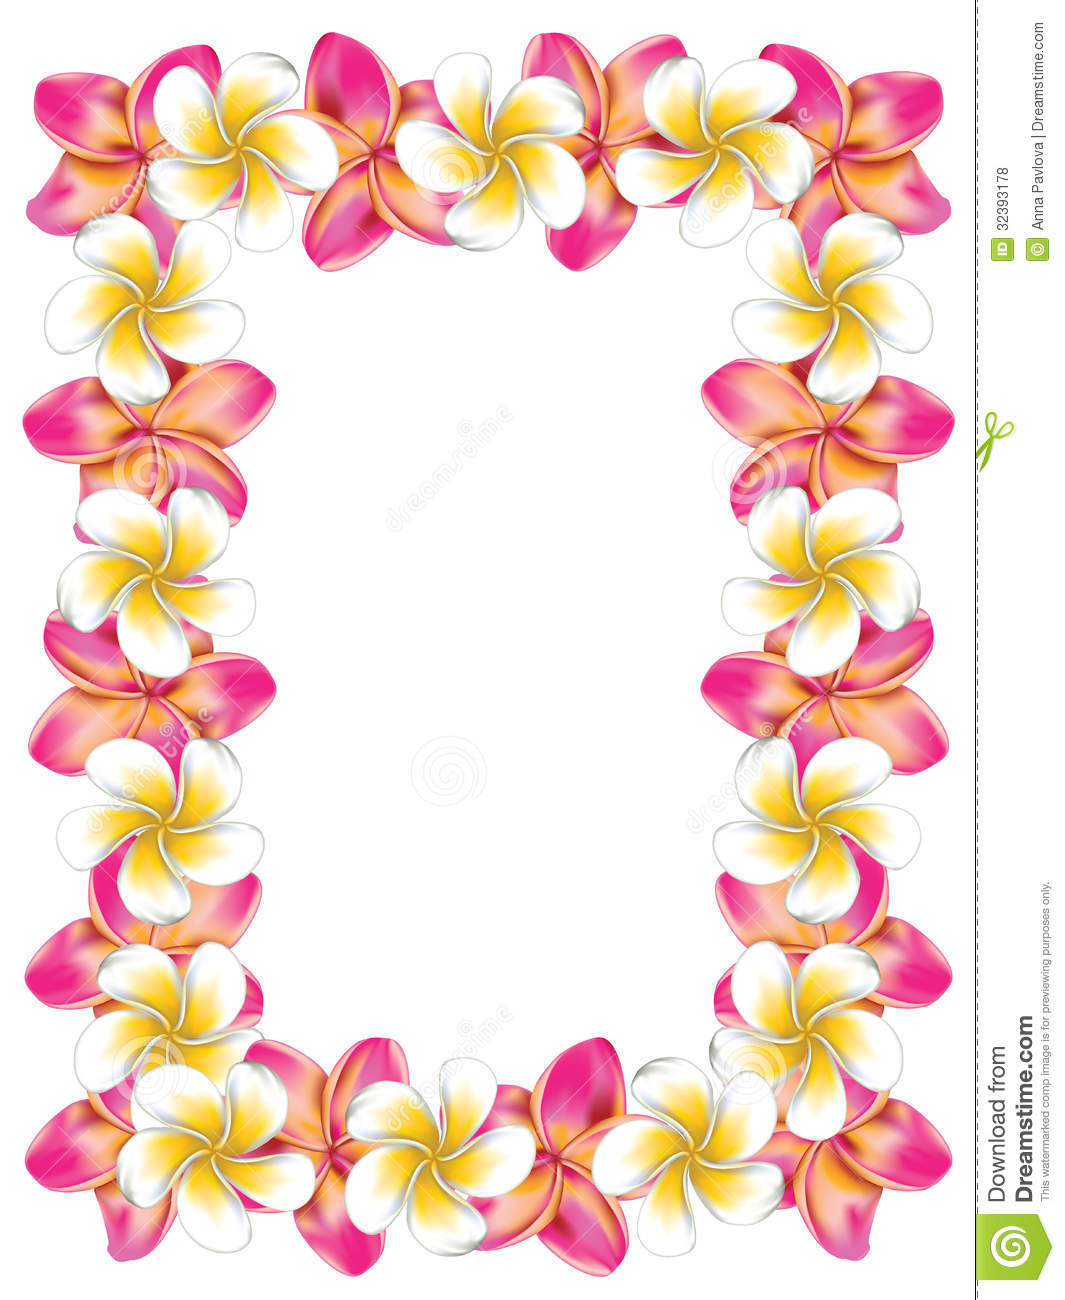 Necklace clipart hawaii #5